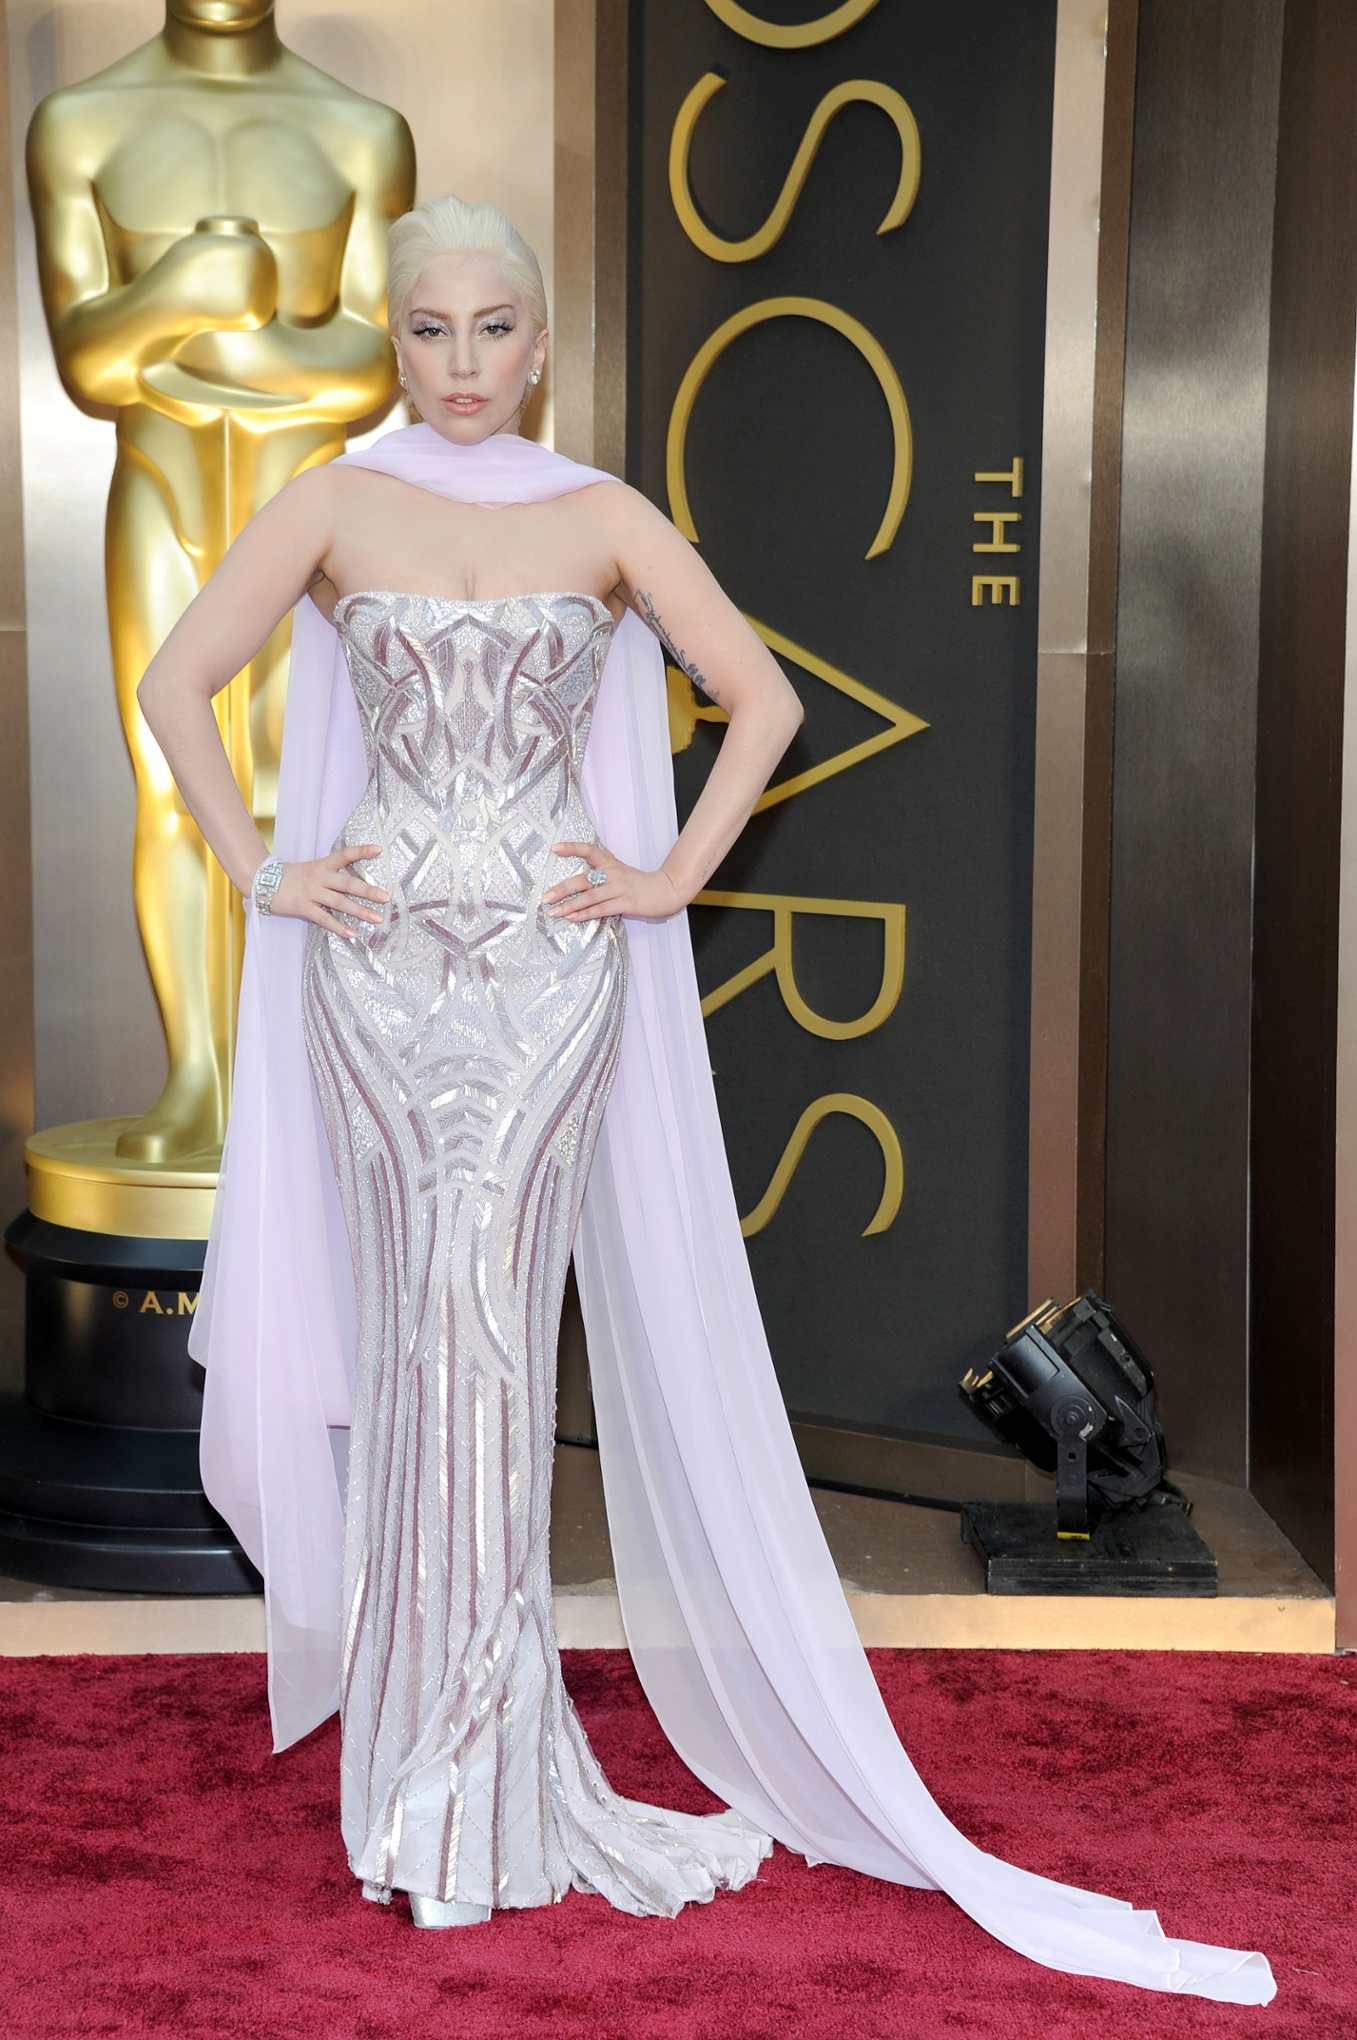 Oscars 2014 Red Carpet: The Best And Worst Dressed